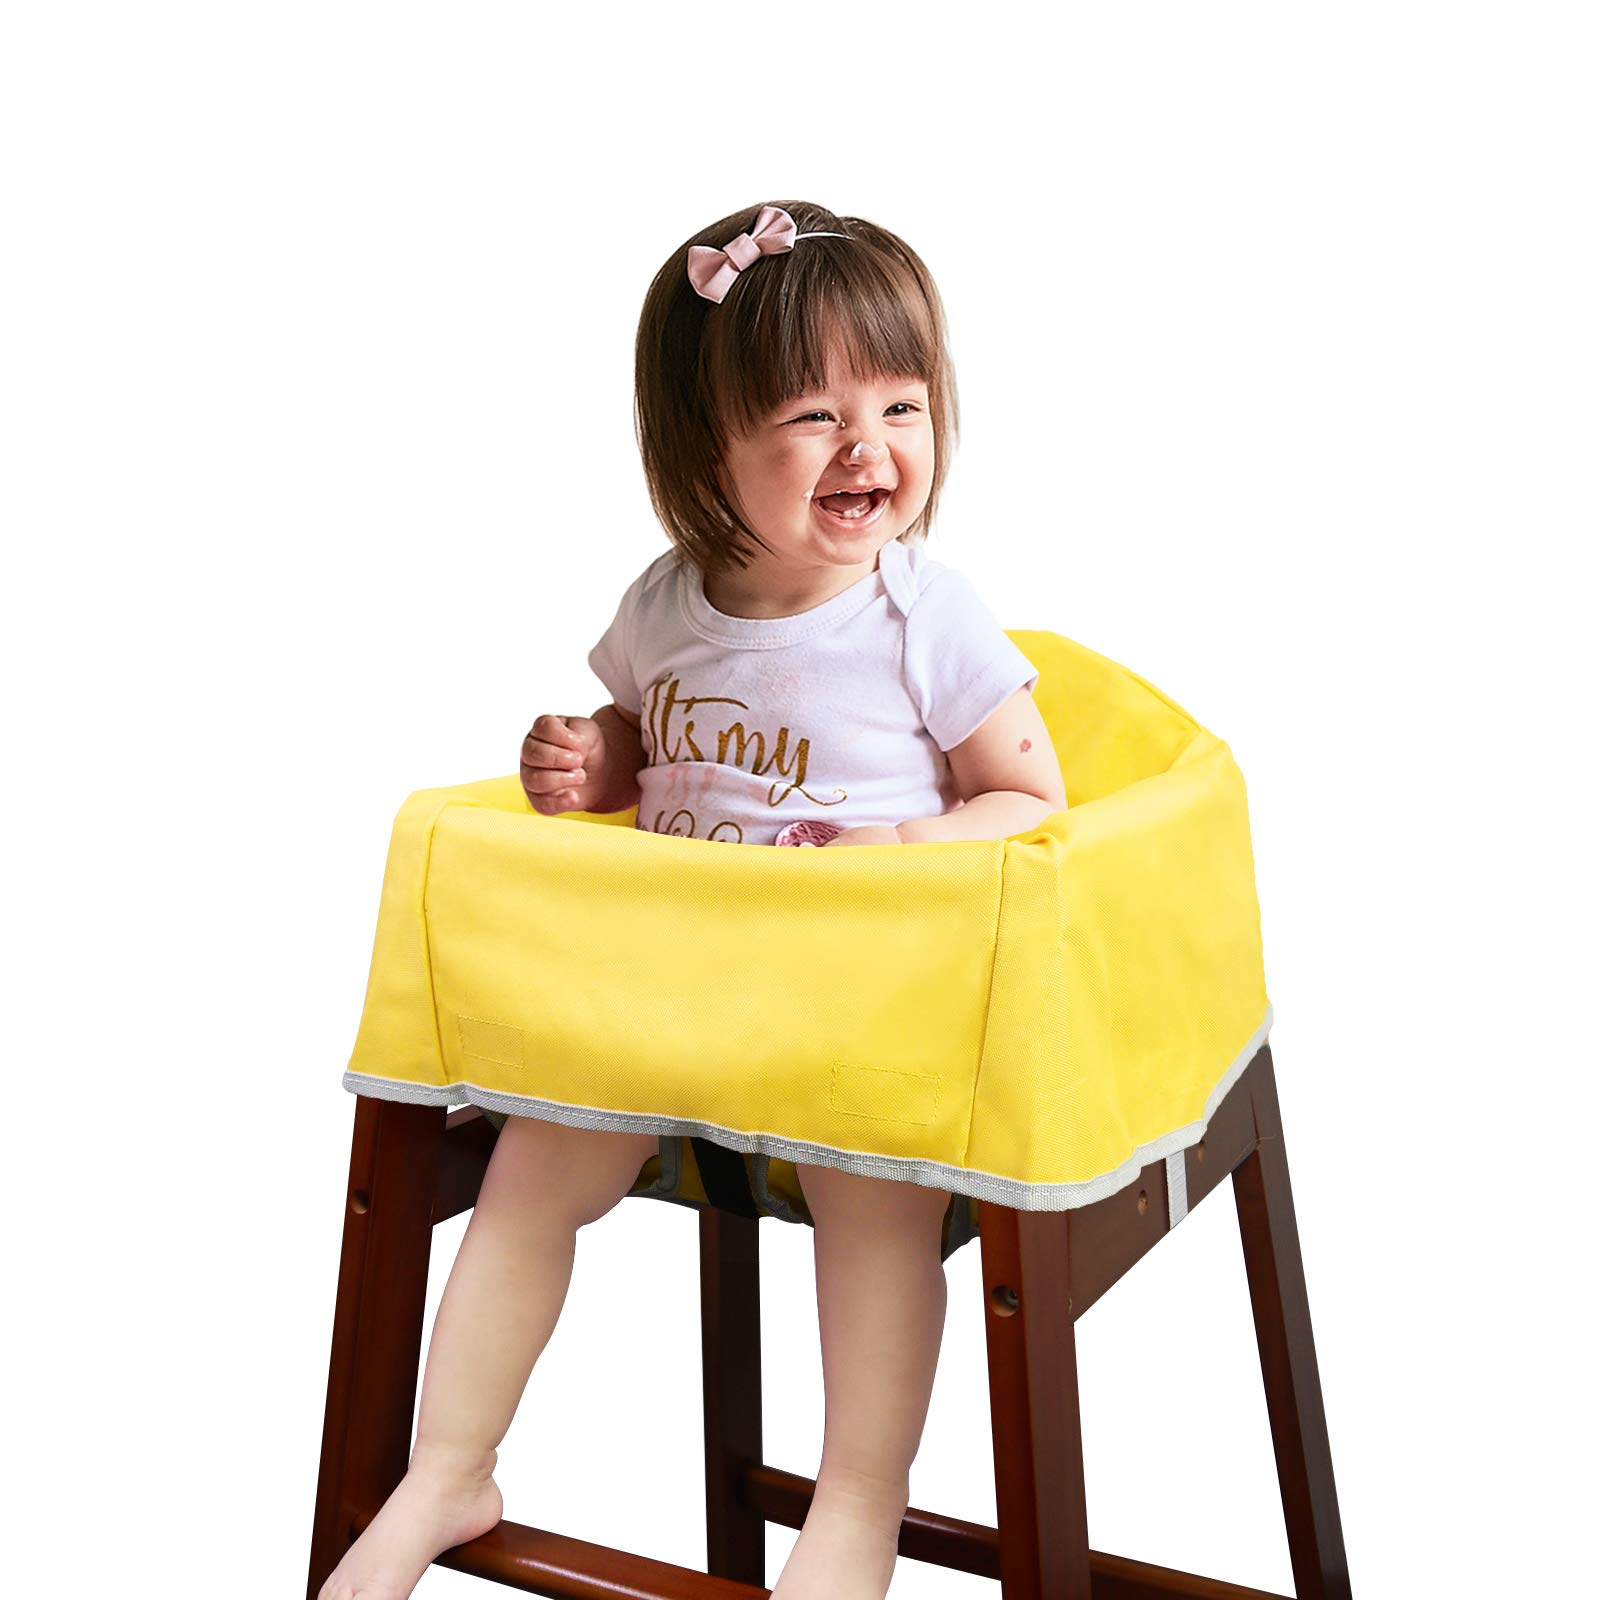 Solfres Dual-Belt High Chair Cover, Baby High Chair Cover with Straps, for Kids Wooden or Restaurant High Chair, Sturdy and Robust Material, Yellow by Solfres